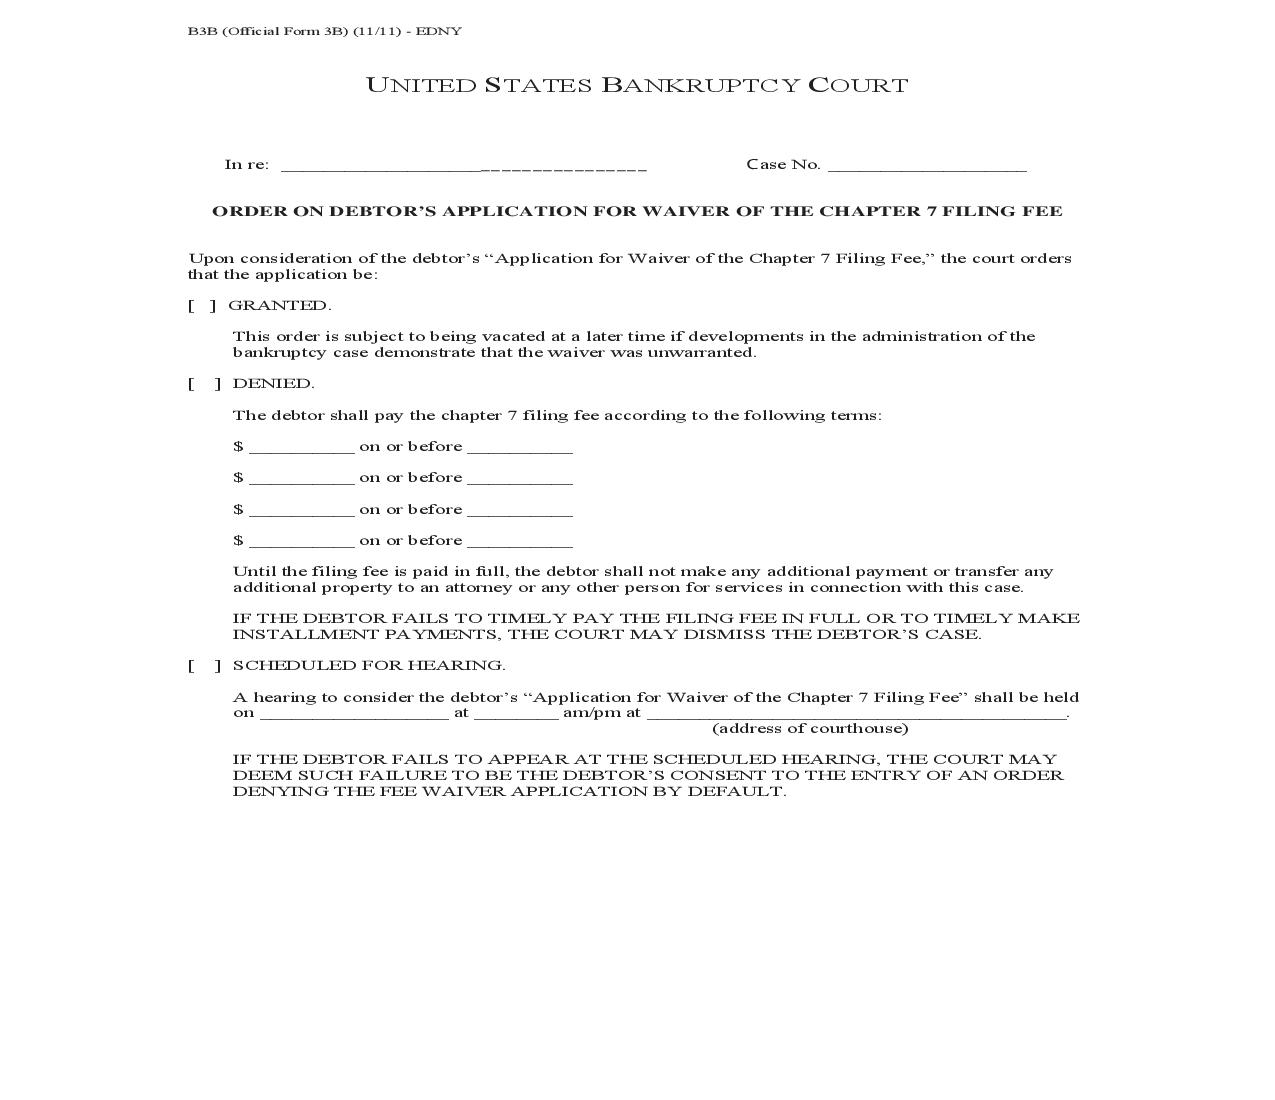 Order On Debtors Application For Waiver Of Chapter 7 Filing Fee (NYEB)   Pdf Fpdf Doc Docx   New York